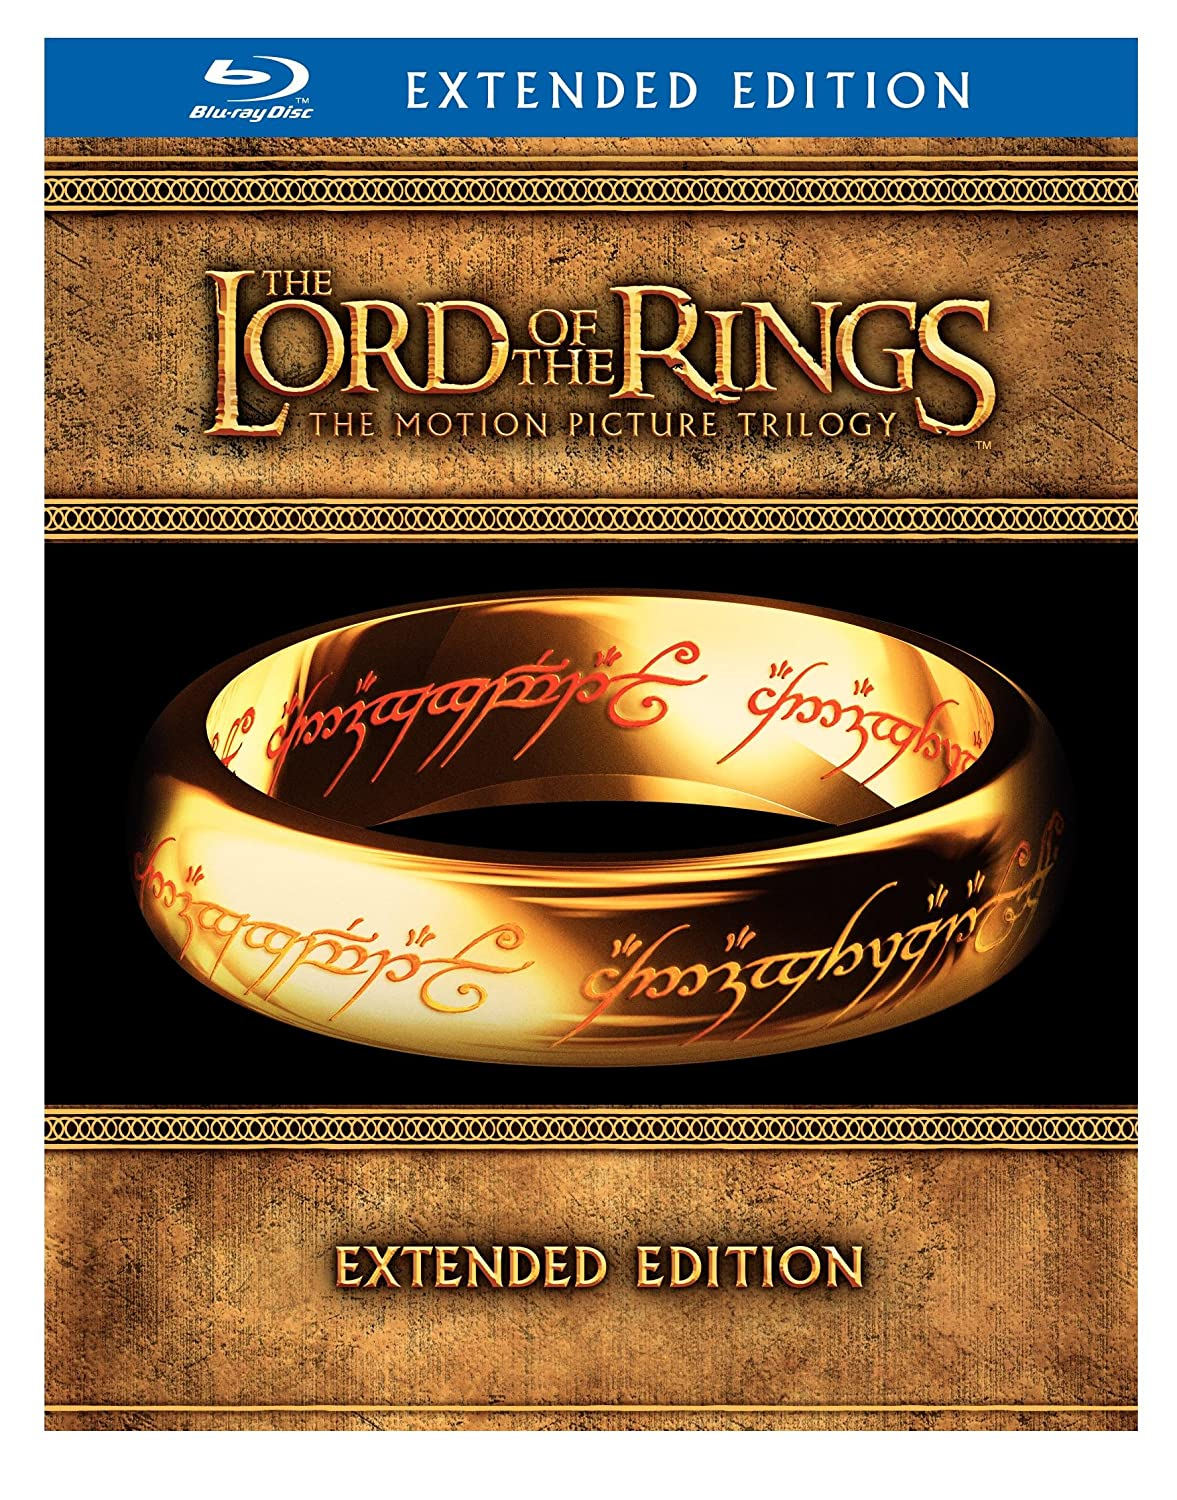 Lotr Extended Edition Blu Ray Editions Blu-ray